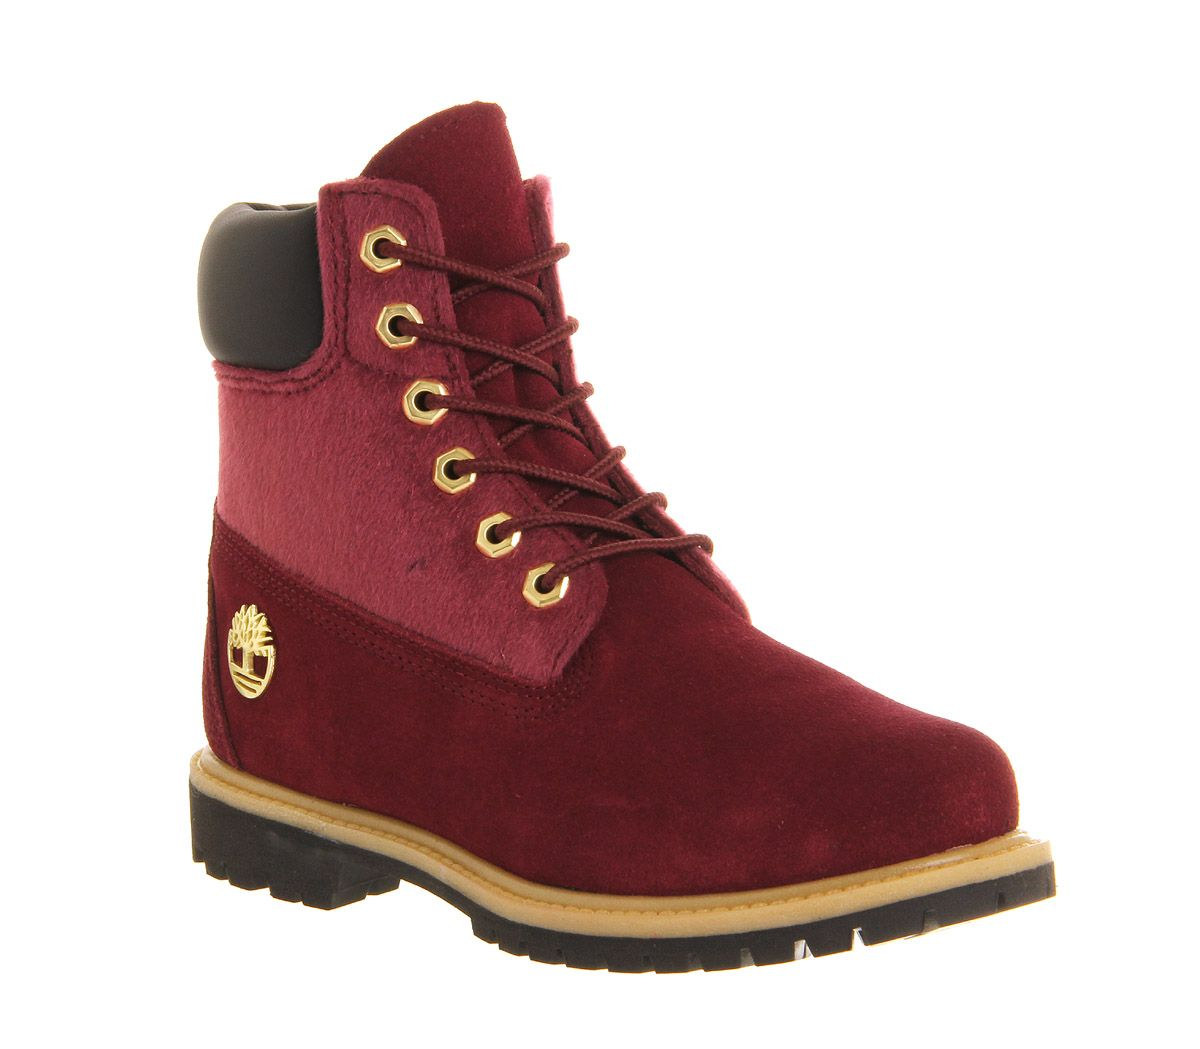 Timberland Premium 6 Boot Burgundy Faux Pony Exclusive - Ankle Boots